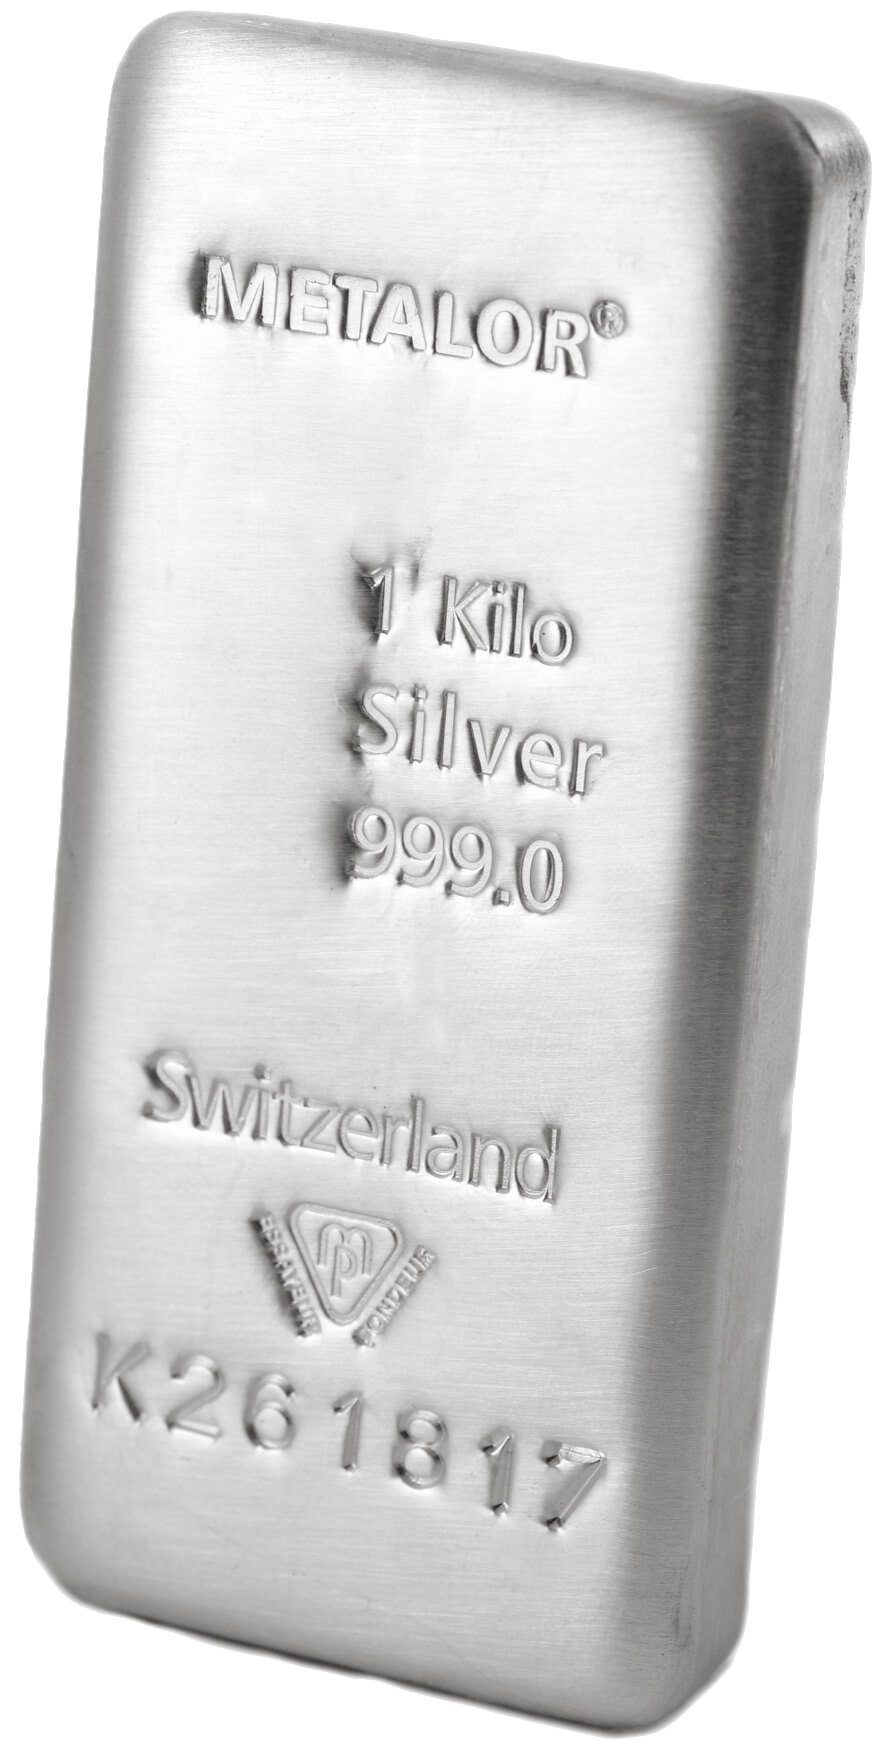 Allocated Bullion Exchange Review 1 kg Silver Bars